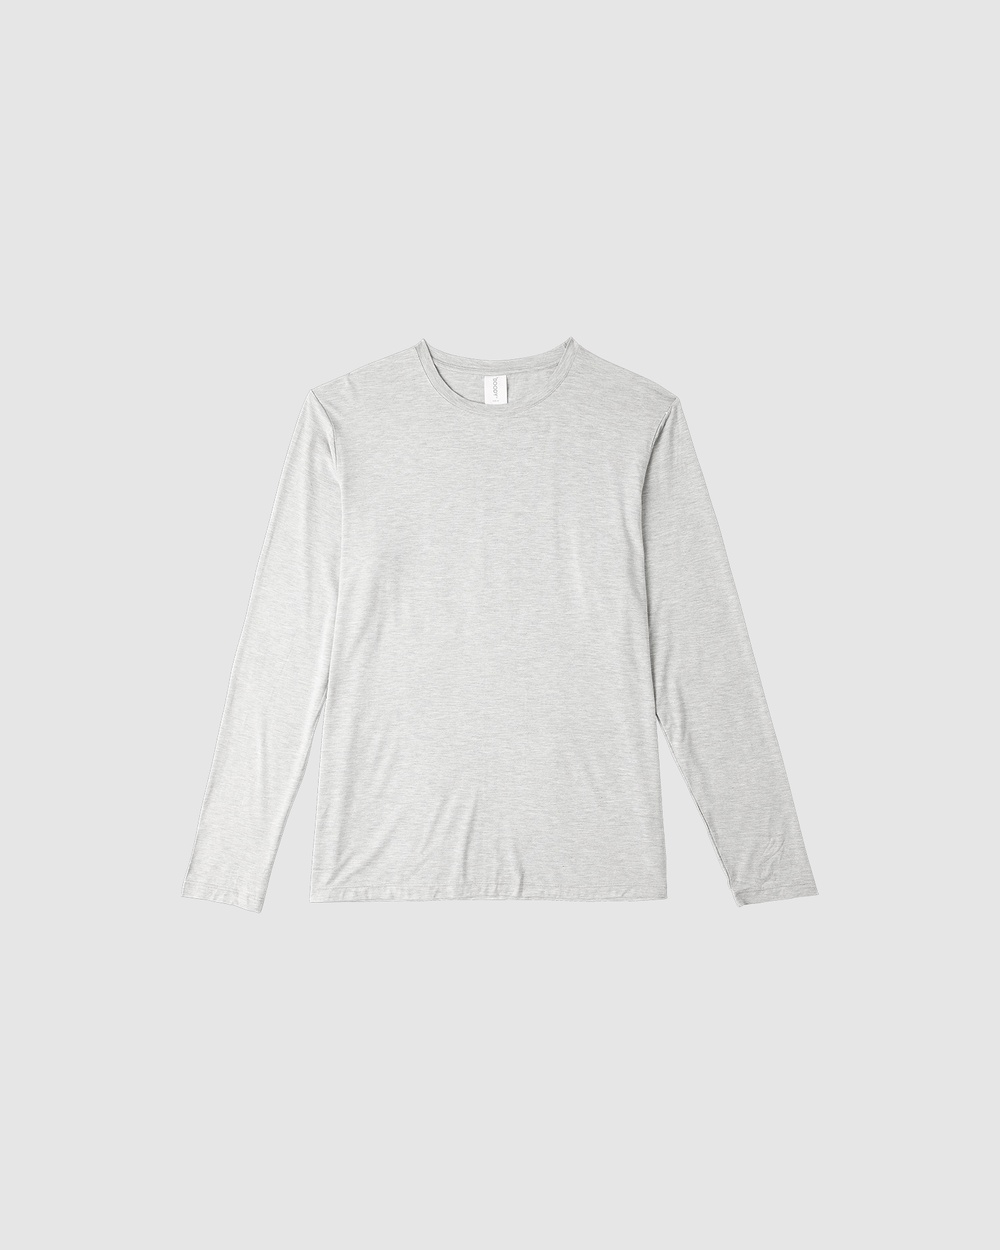 Boody Organic Bamboo Eco Wear - Long Sleeve Crew Neck T Shirt - Long Sleeve T-Shirts (Light Marl) Long Sleeve Crew Neck T-Shirt